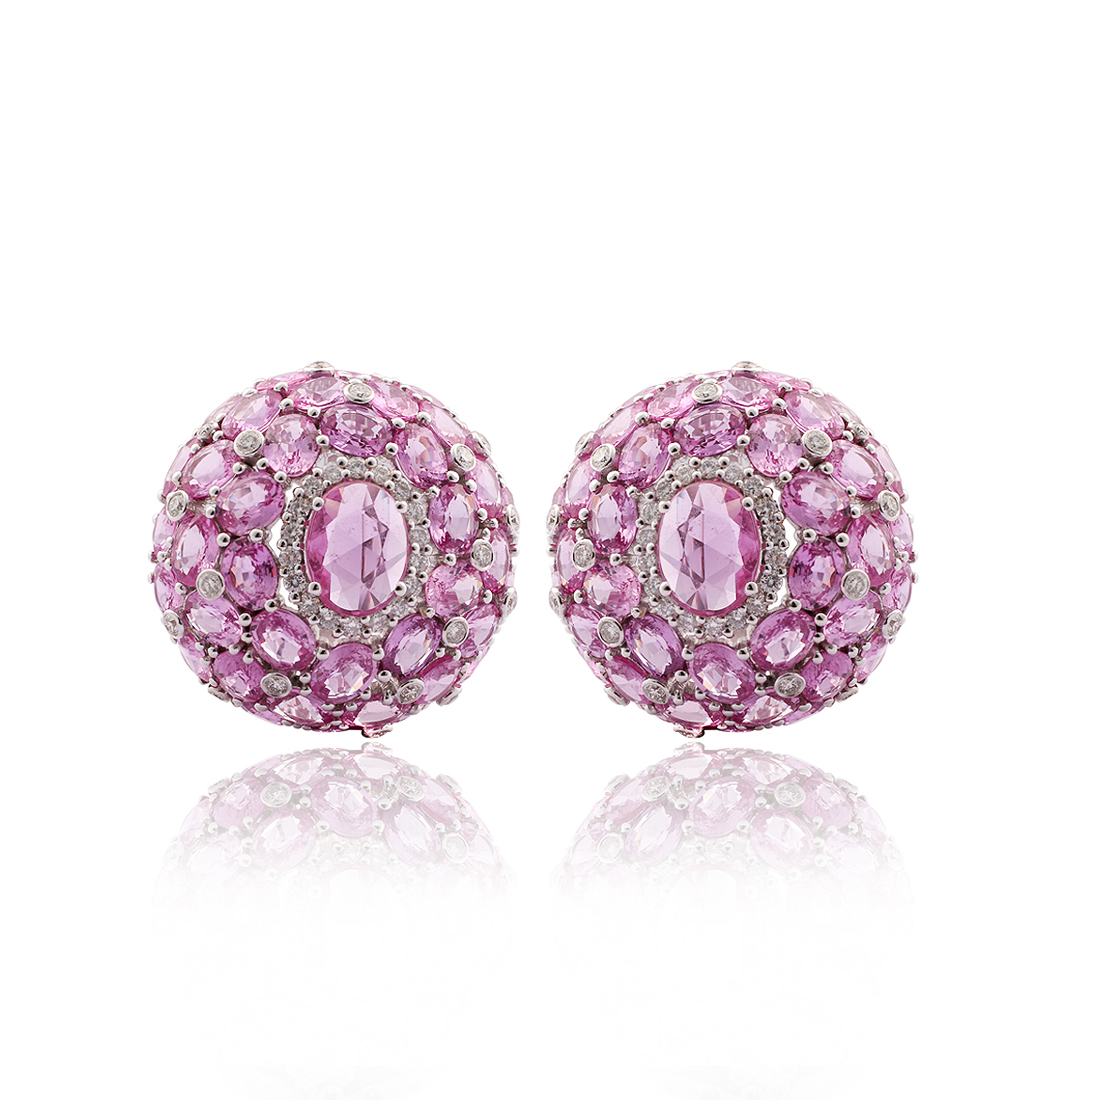 Celebrity Earring E1880-MS